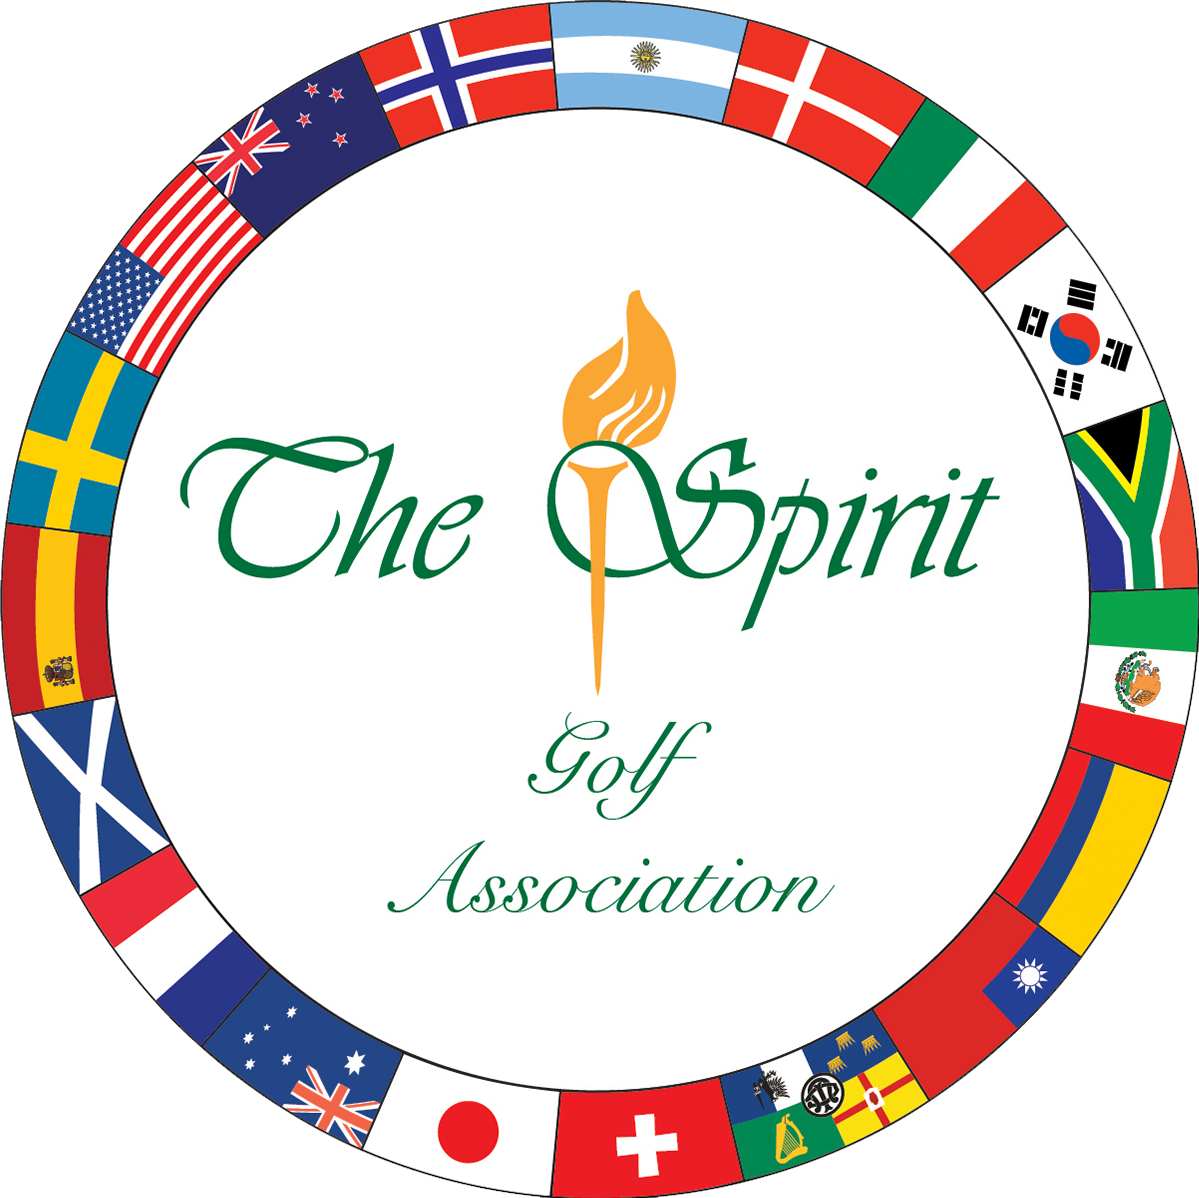 The Spirit Golf